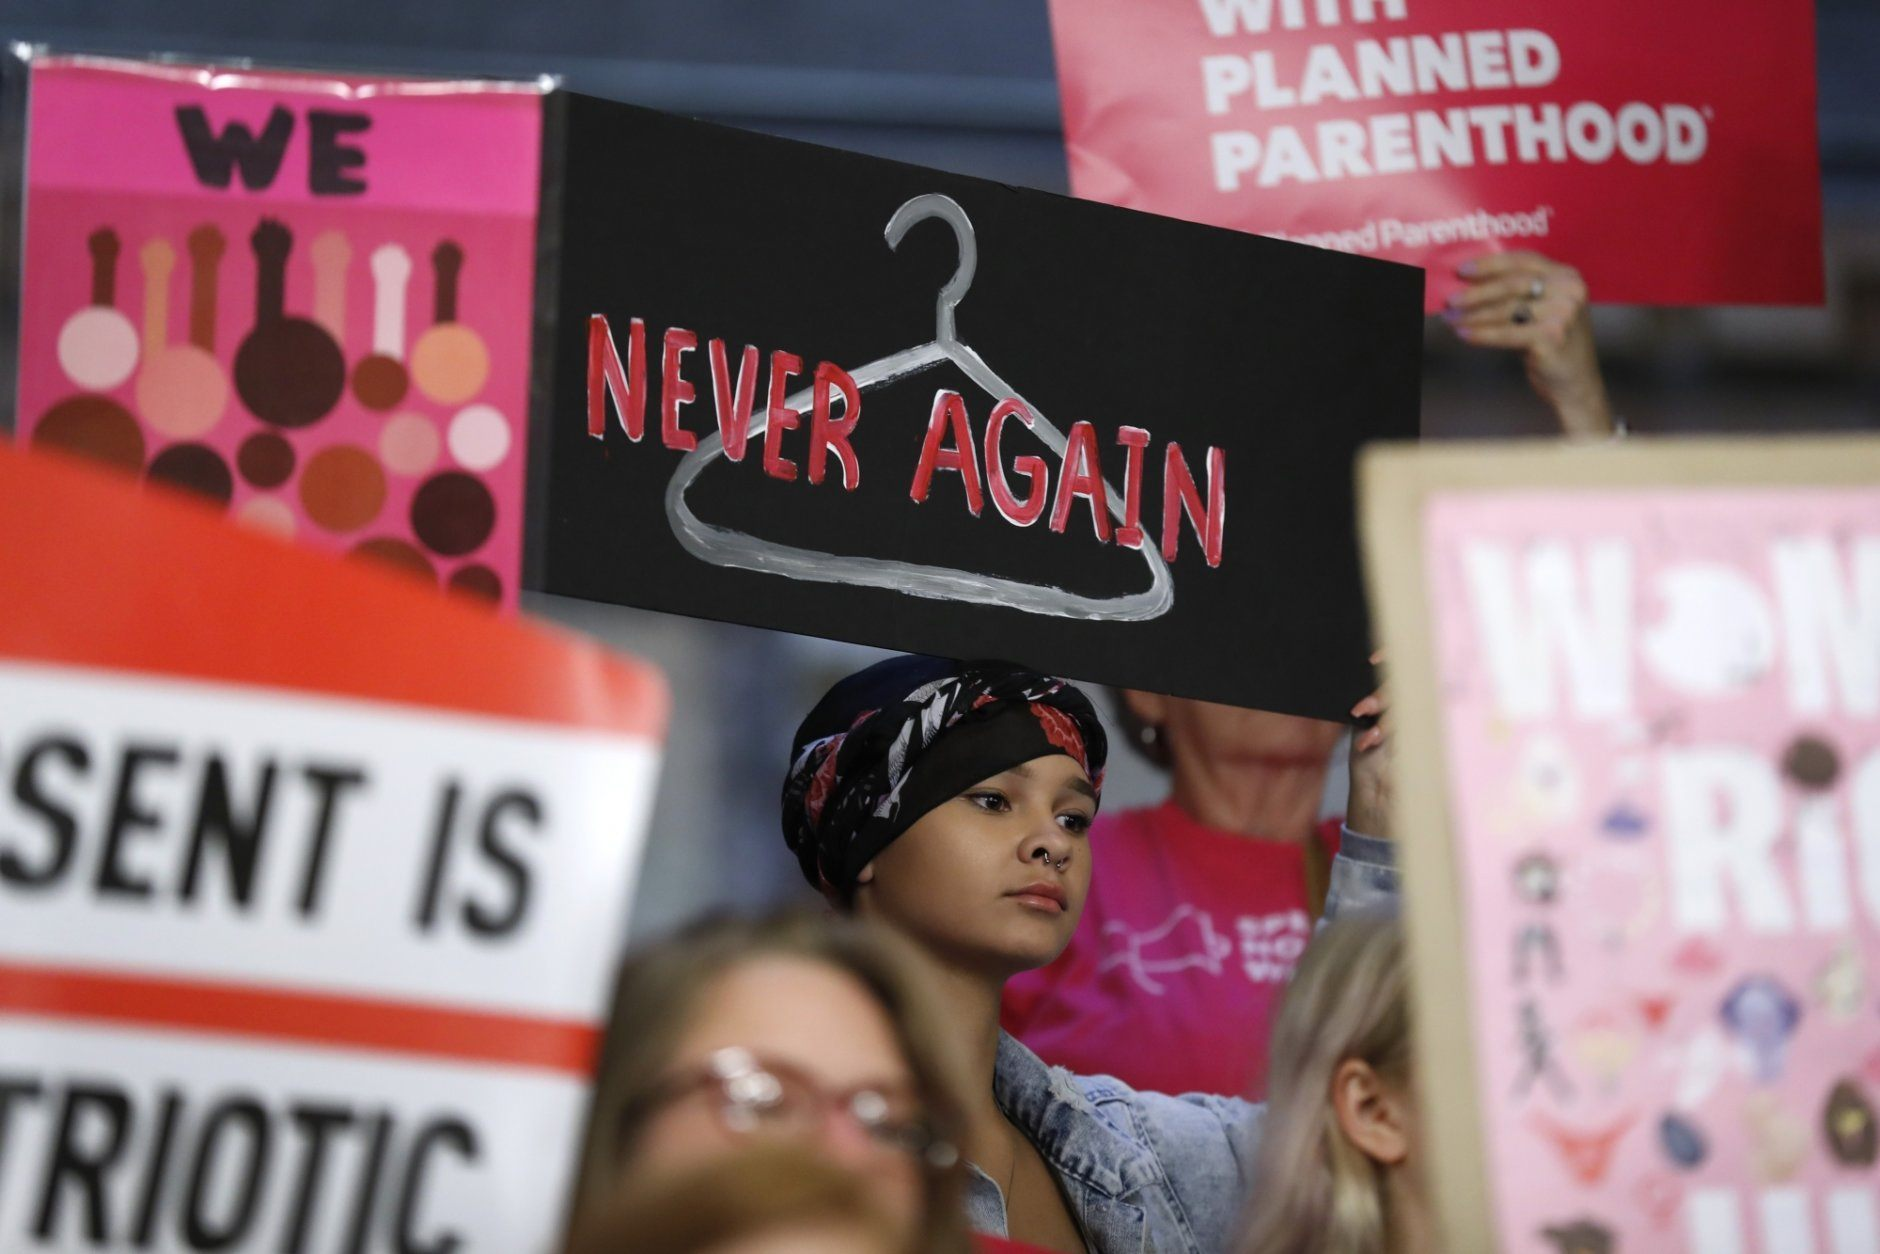 FILE - In this Tuesday, May 21, 2019 file photo, August Mulvihill, of Norwalk, Iowa, center, holds a sign depicting a wire hanger during a rally to protest recent abortion bans put forward in several state legislatures at the Statehouse in Des Moines, Iowa. (AP Photo/Charlie Neibergall)